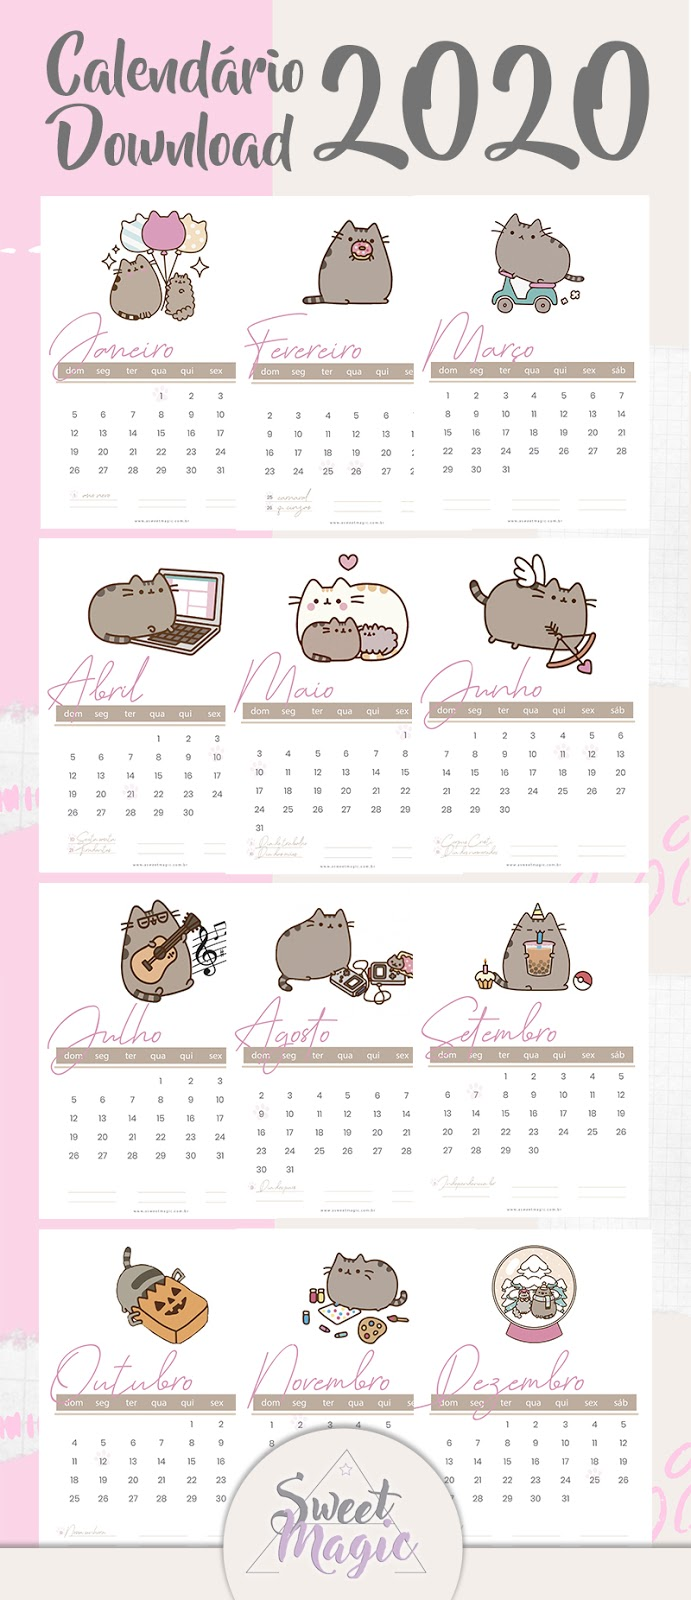 calendario-fofo-2020-pusheen-cat-gratis